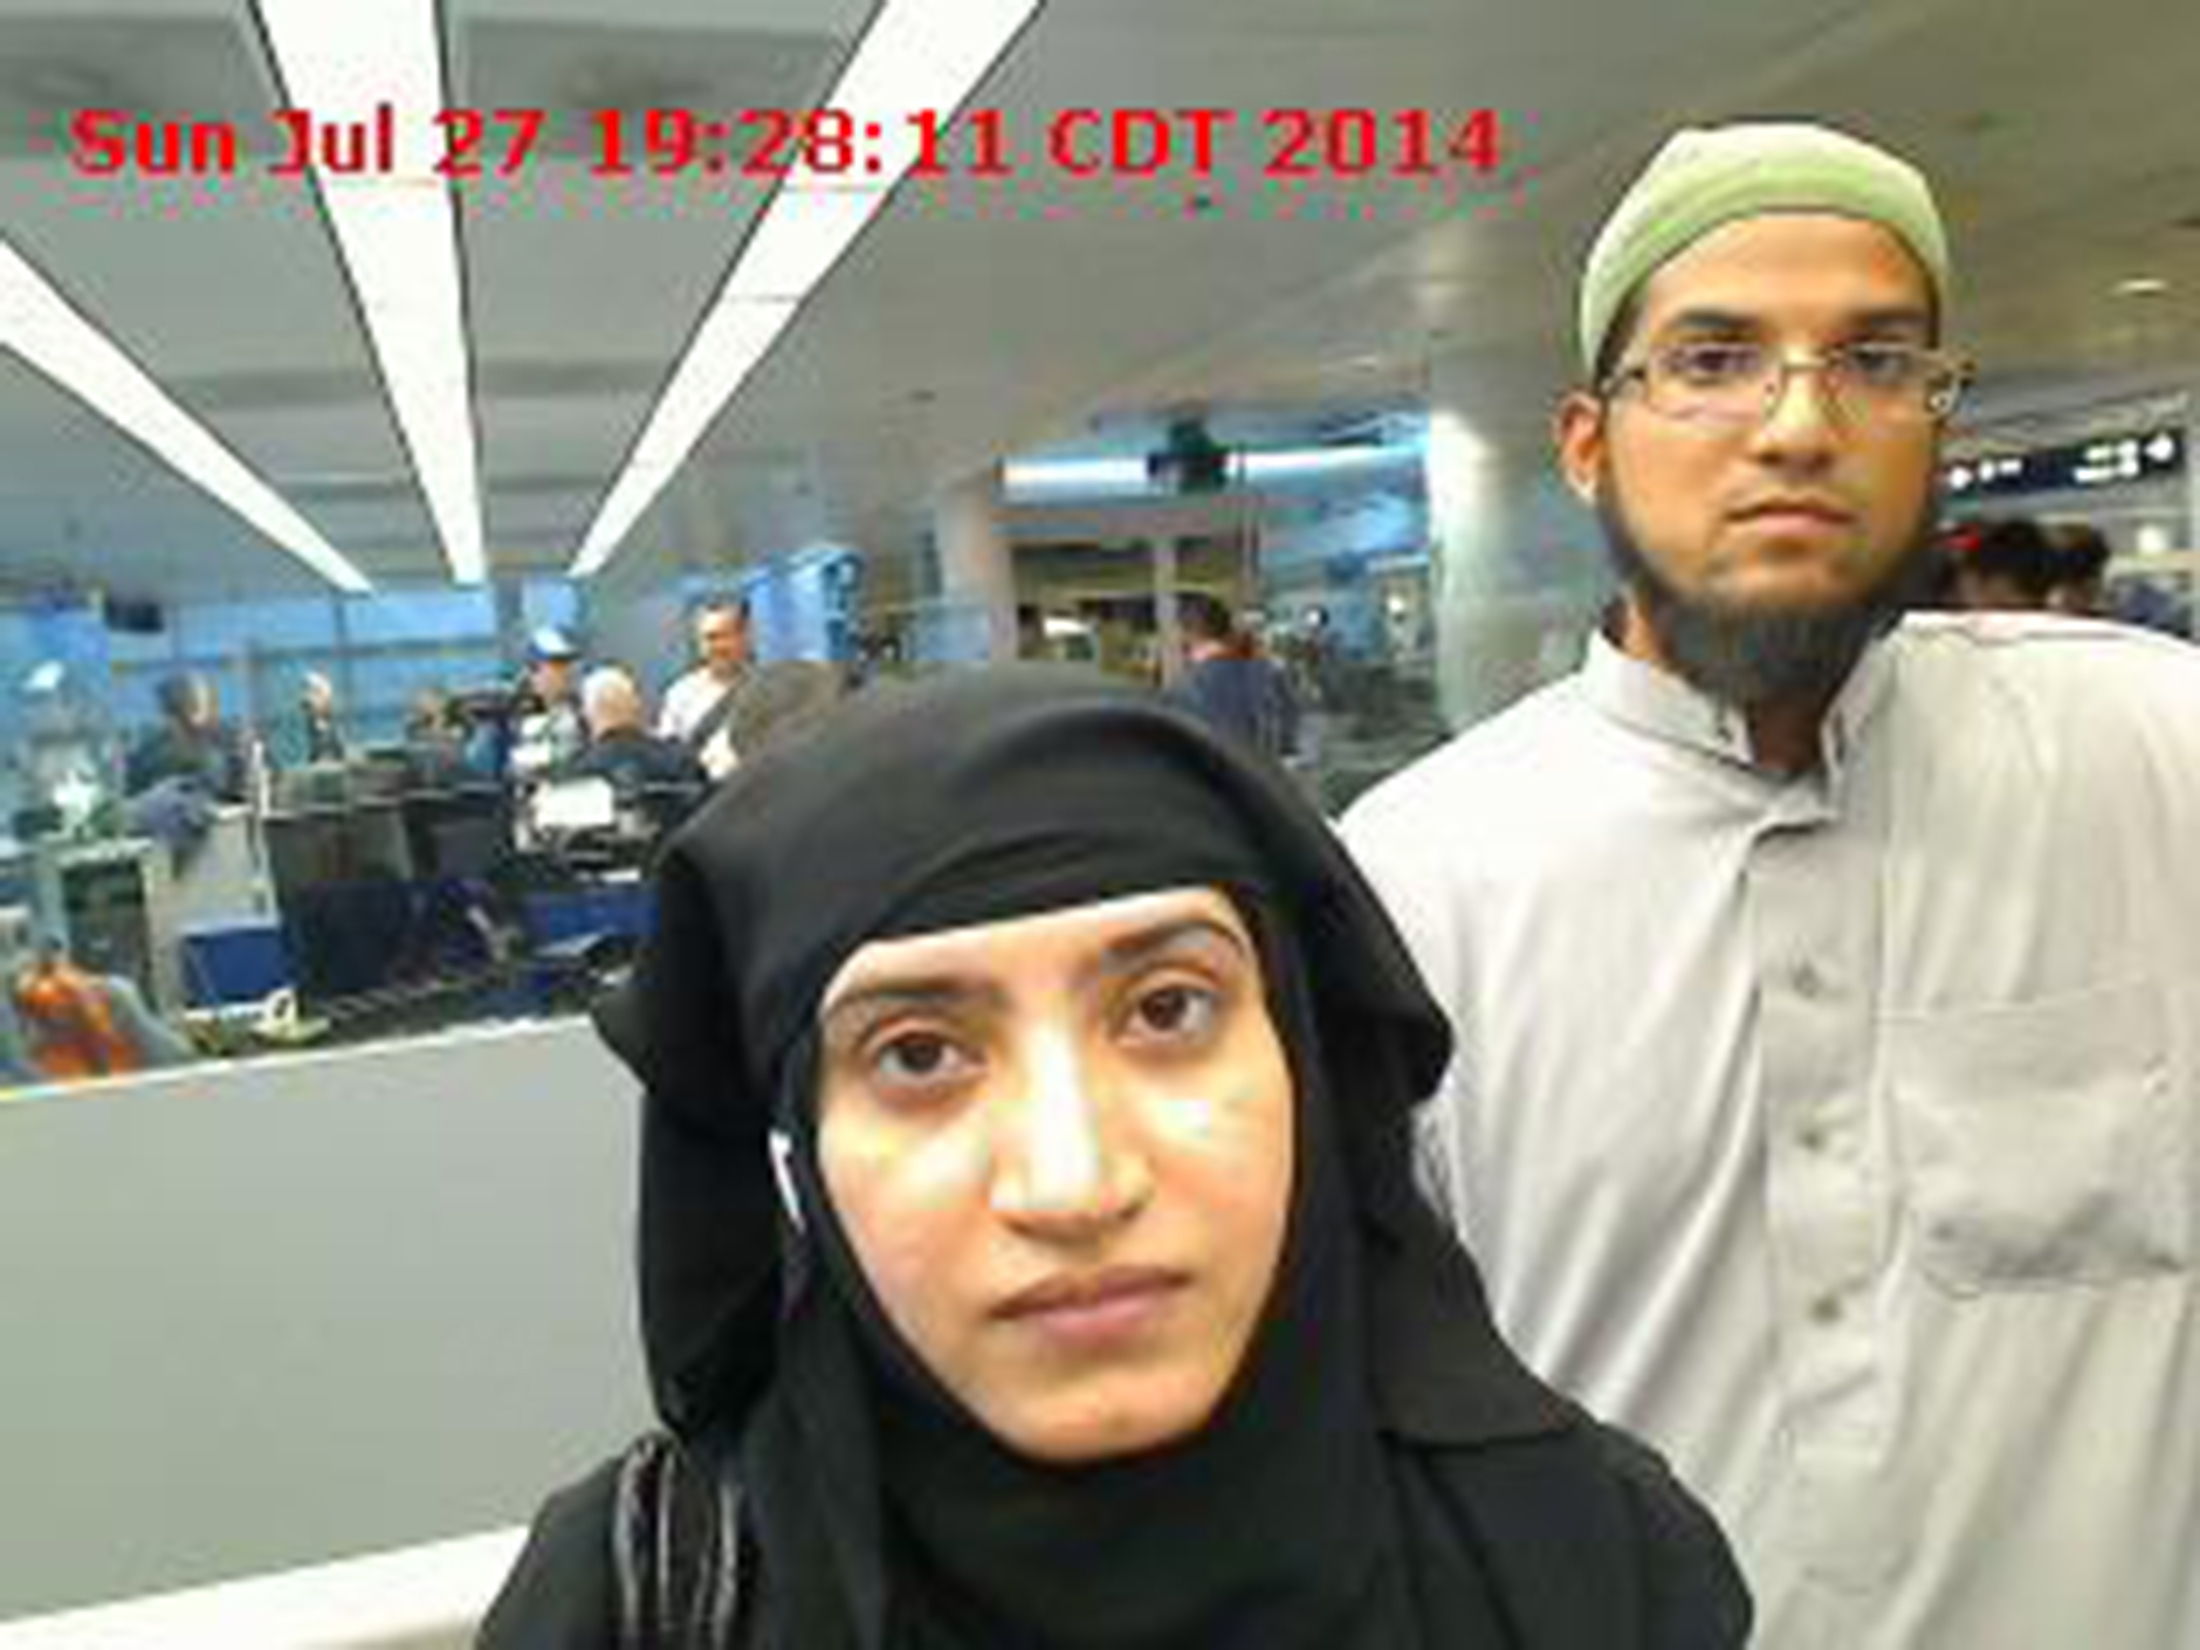 Tashfeen Malik, left, and Syed Rizwan Farook are pictured passing through Chicago's O'Hare International Airport in this July 27, 2014, handout photo obtained by Reuters on Dec. 8, 2015